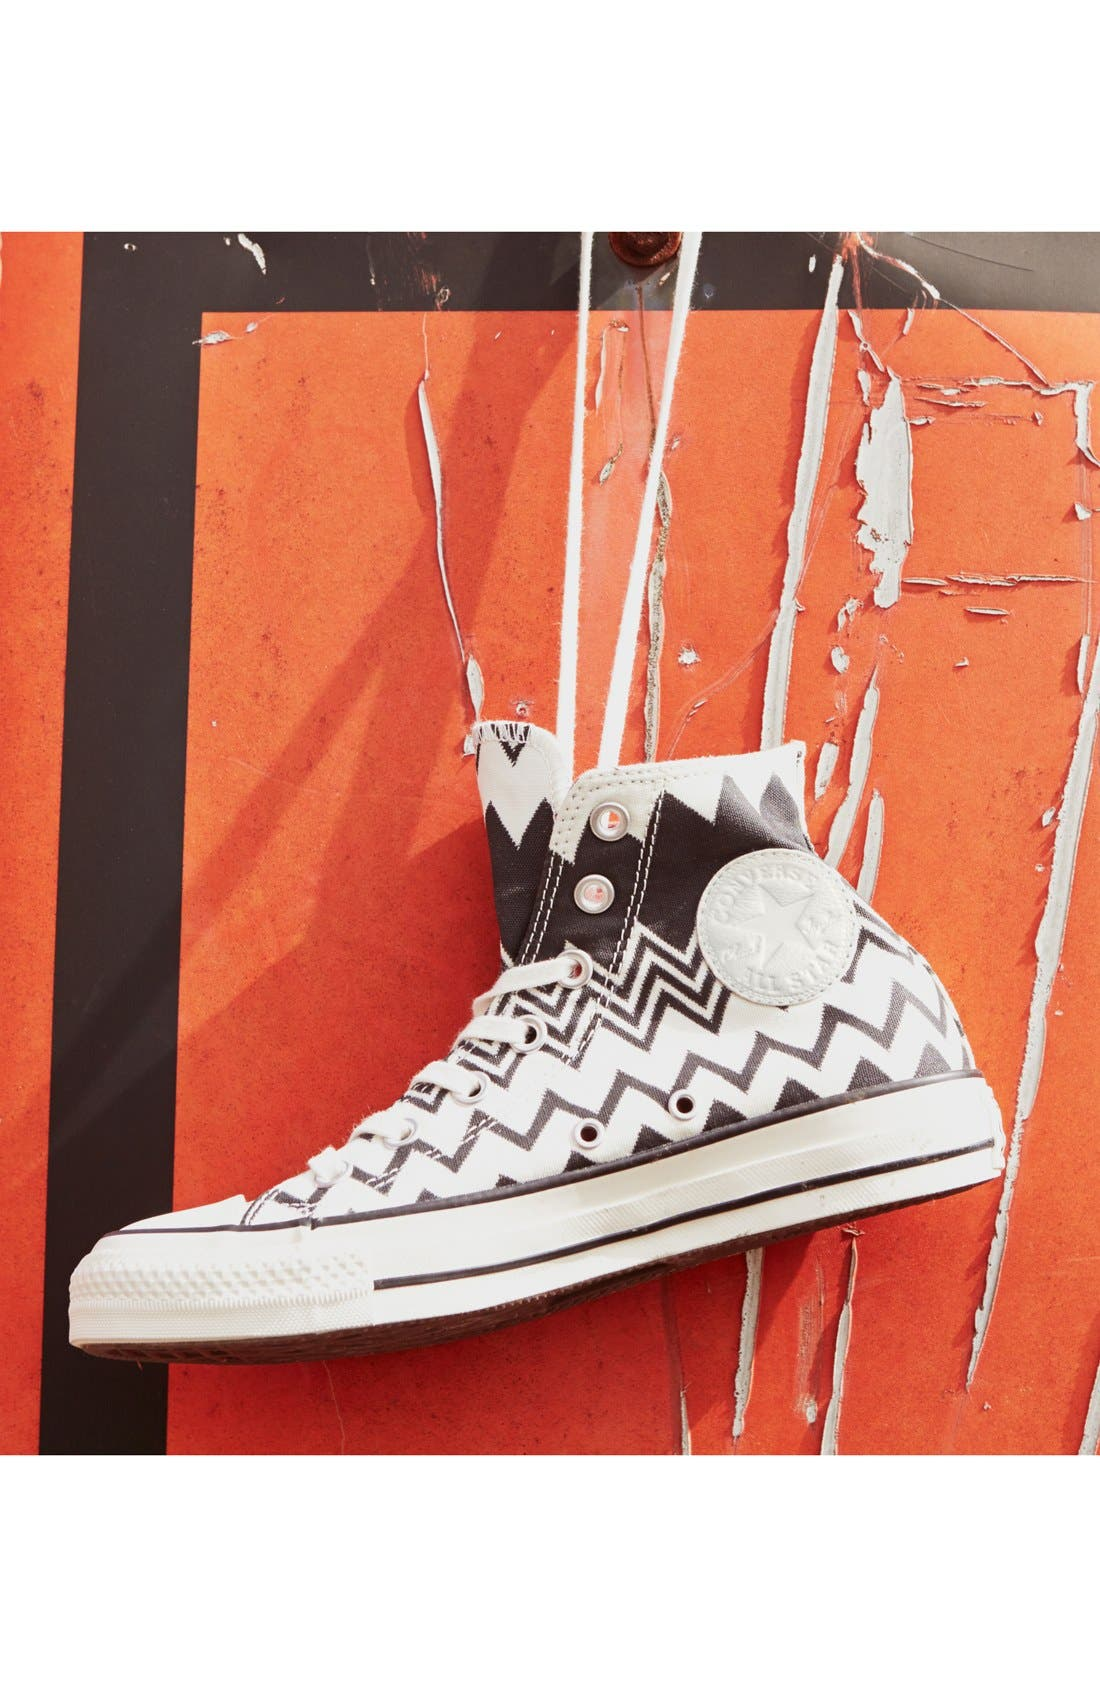 x Missoni Chuck Taylor<sup>®</sup> All Star<sup>®</sup> High Top Sneaker,                             Alternate thumbnail 5, color,                             001